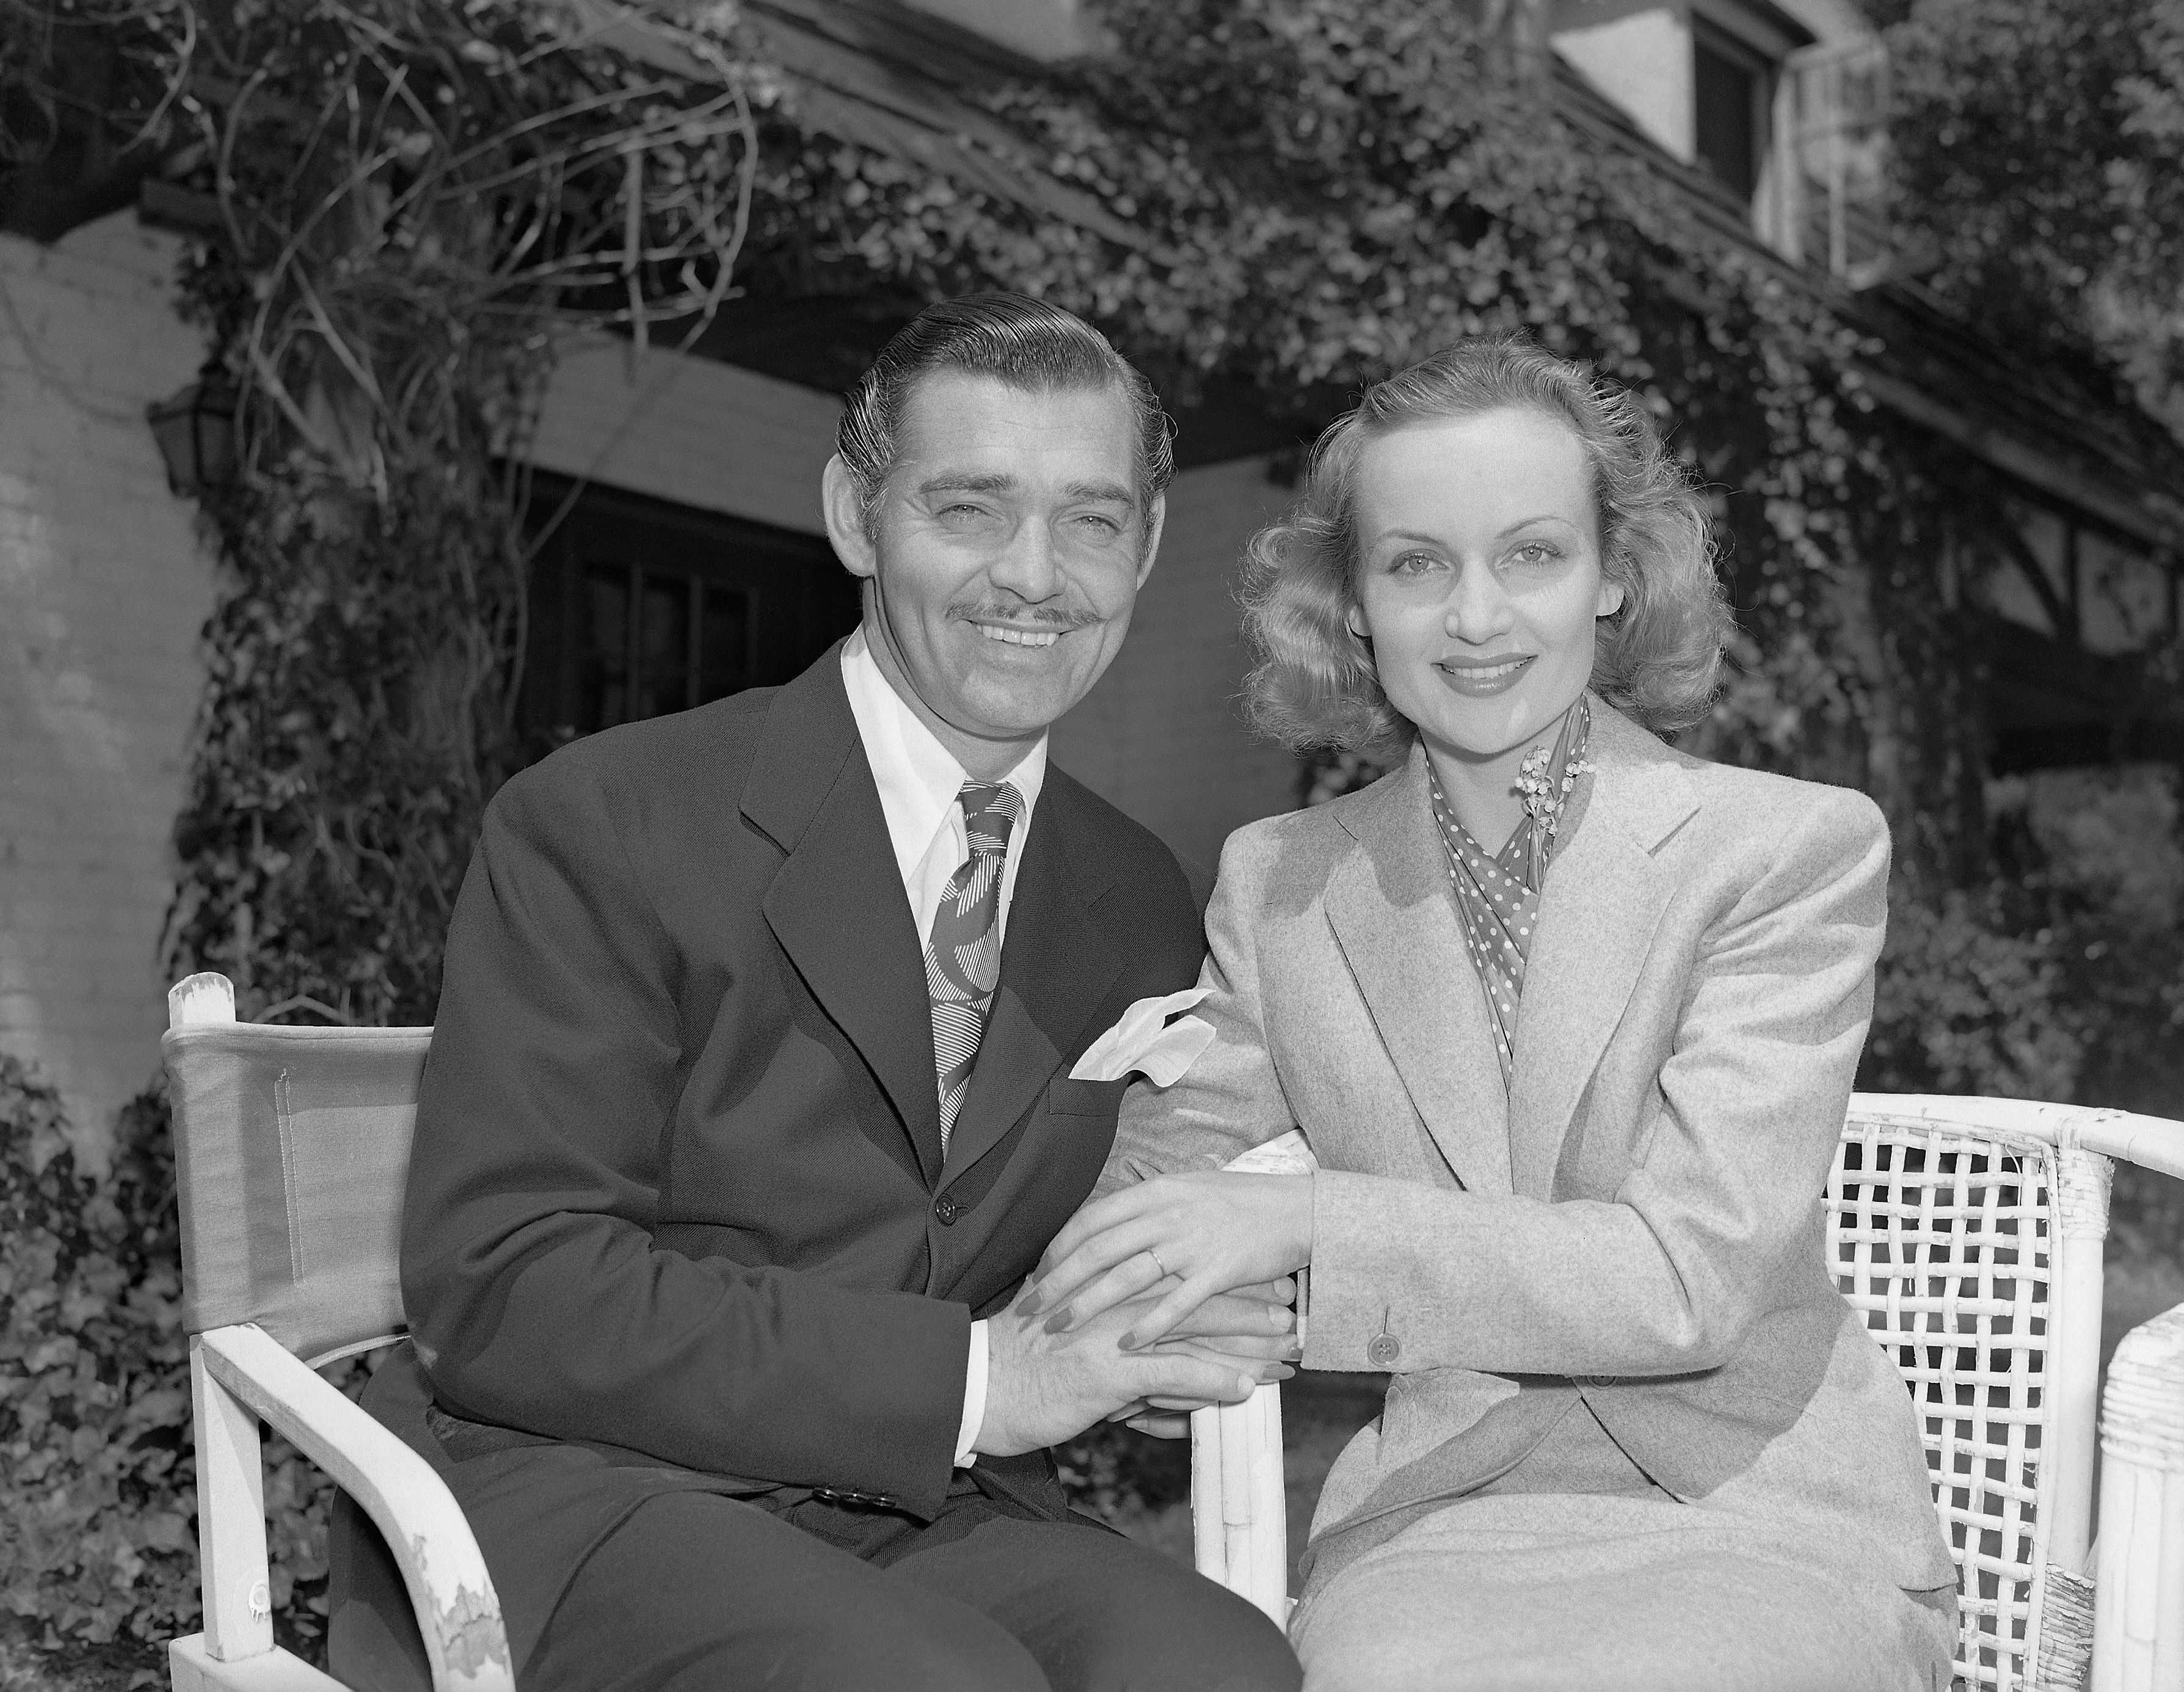 Clark Gable and Carole Lombard after Their Wedding